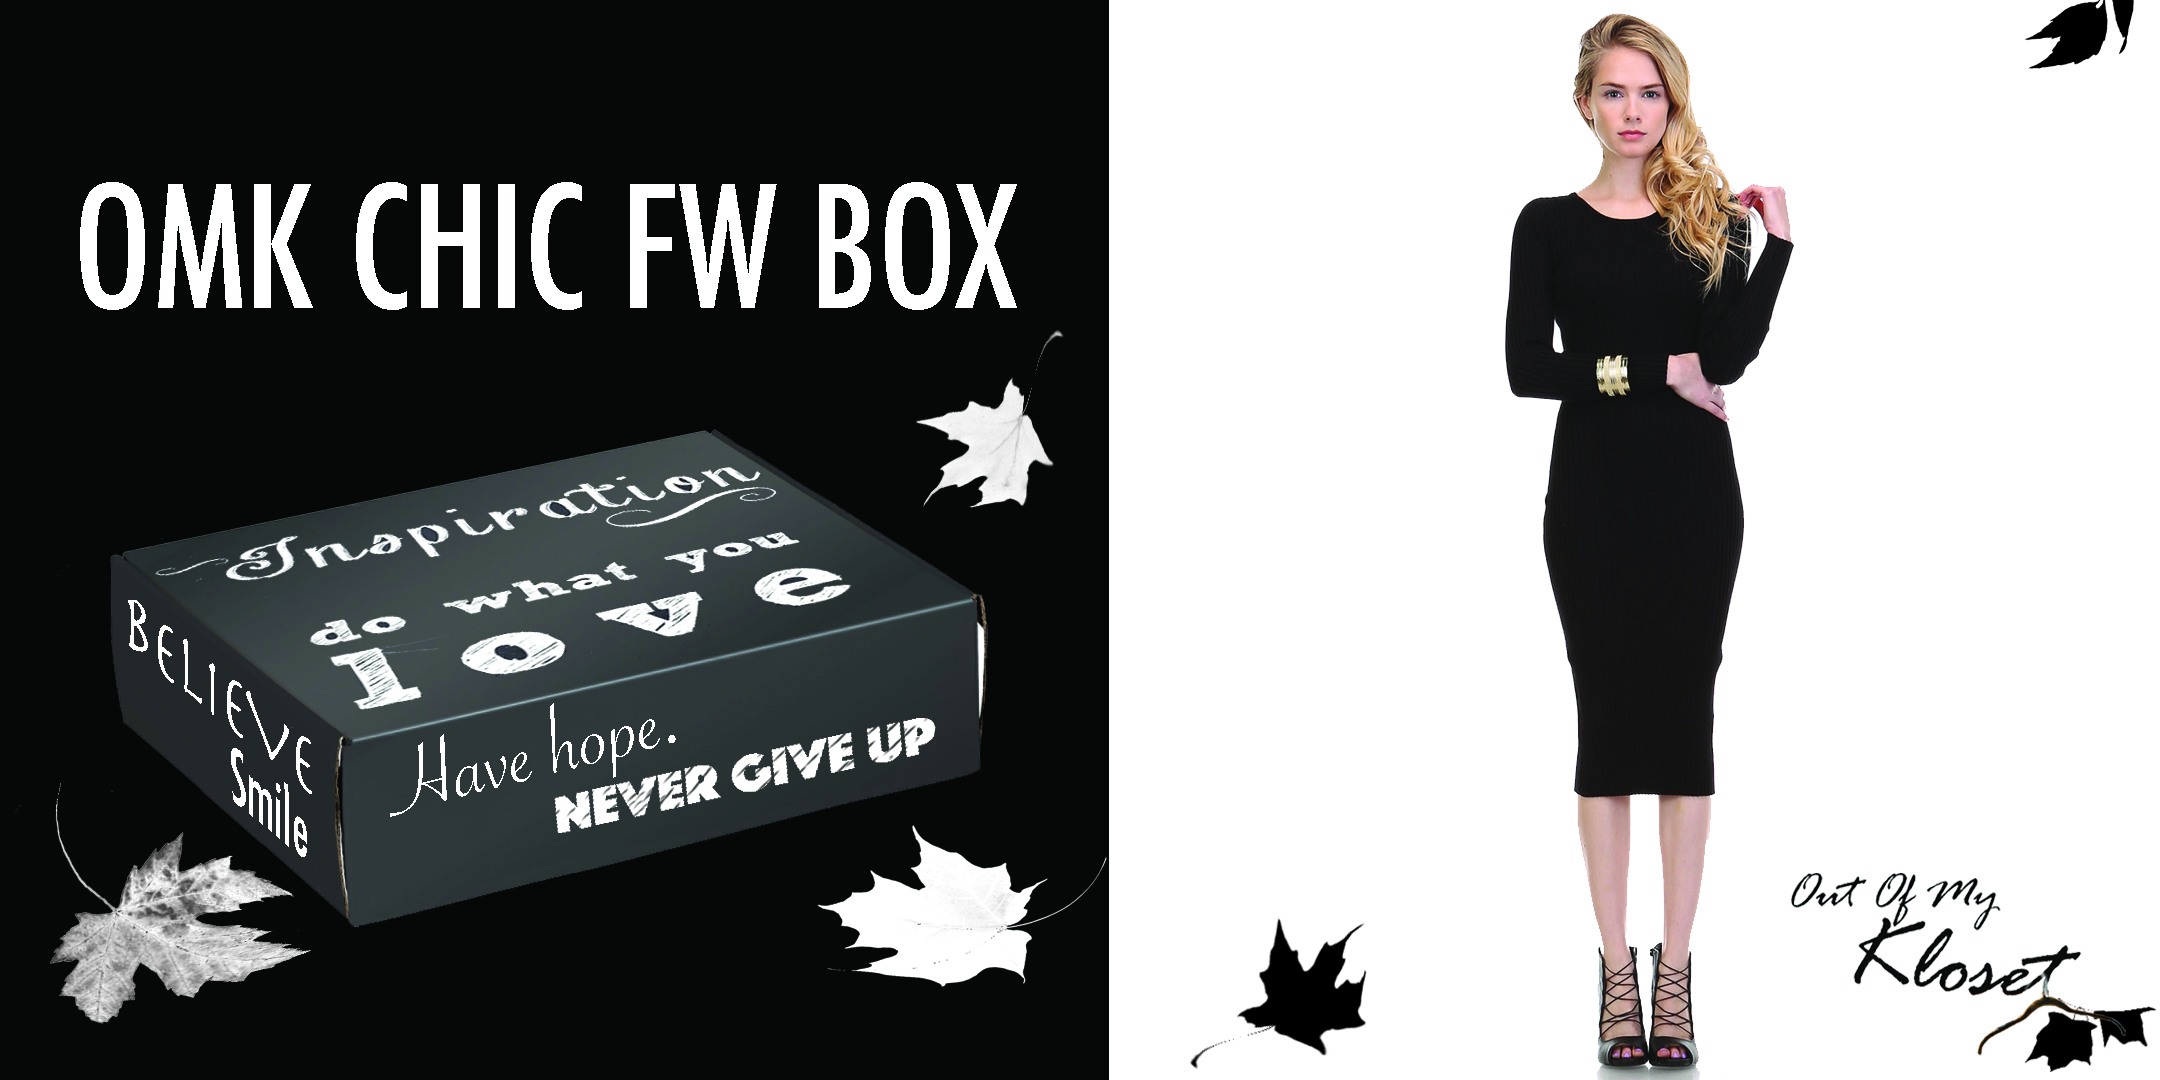 omk-inspirational-box-promotion-1-.jpg